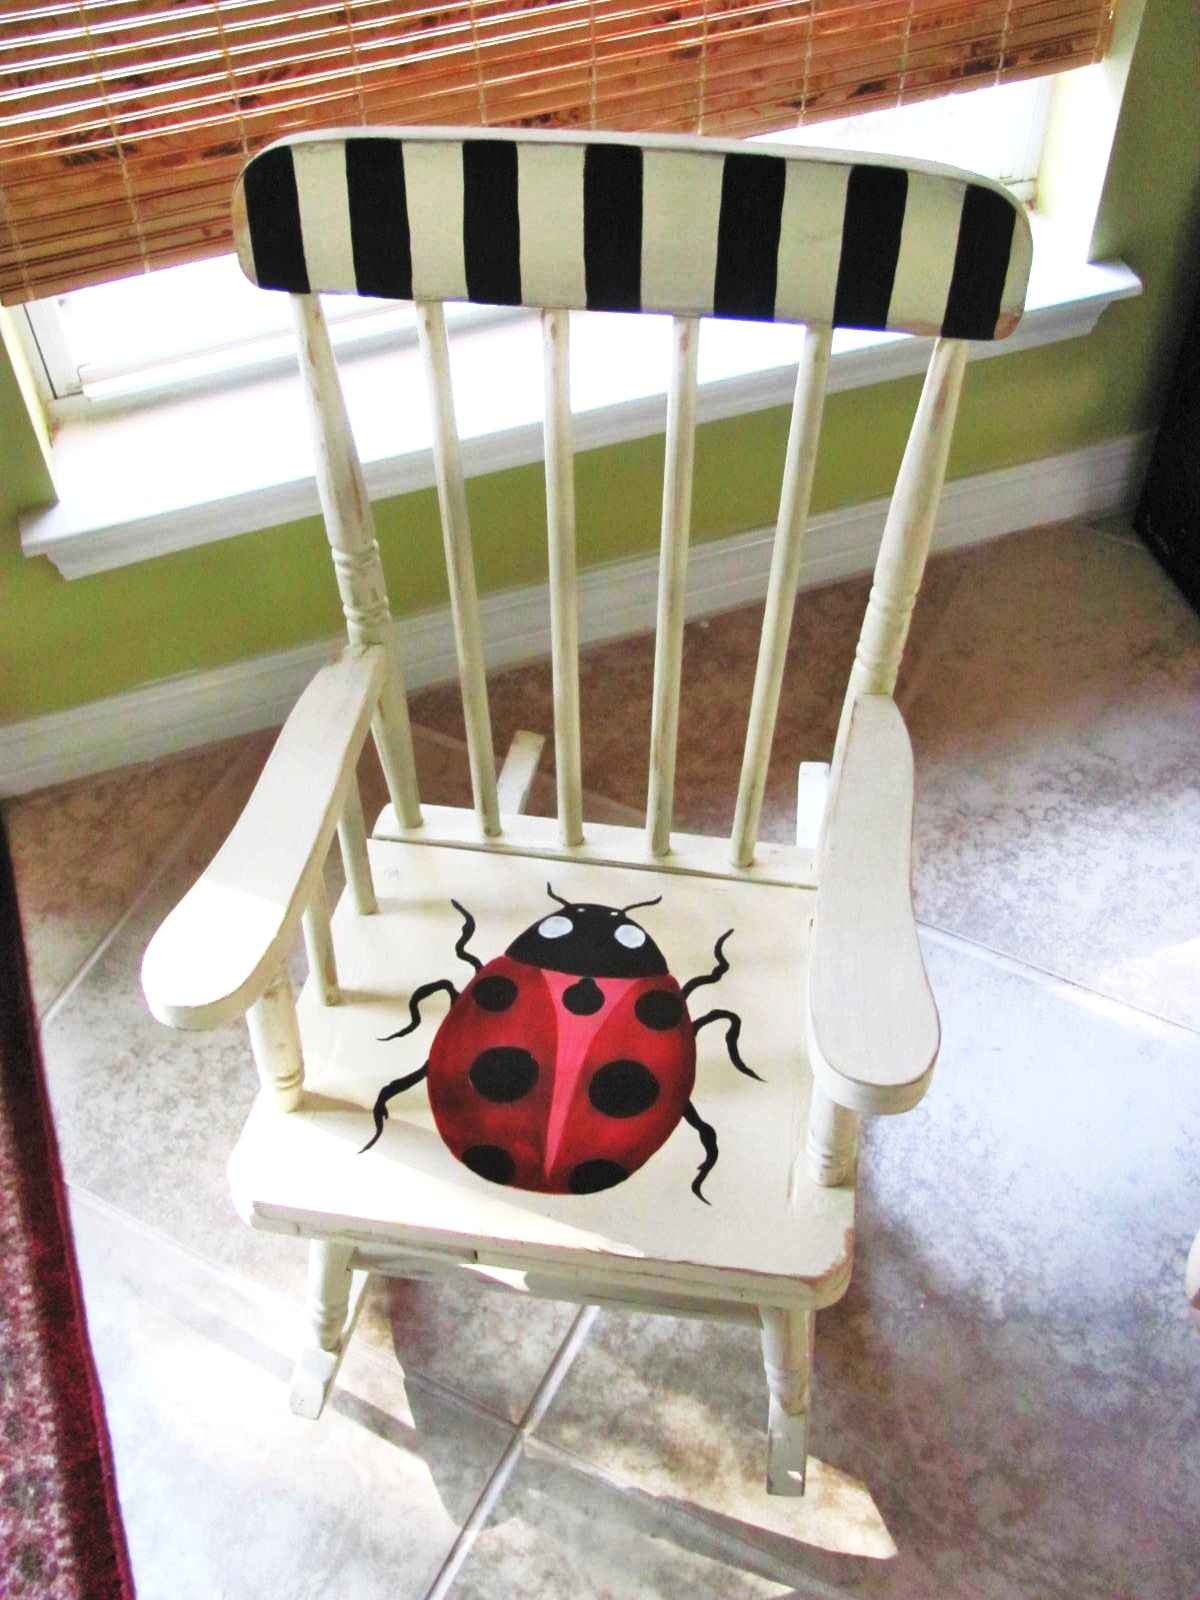 Ladybug Rocker Trash To Cuteness Lucy Designs